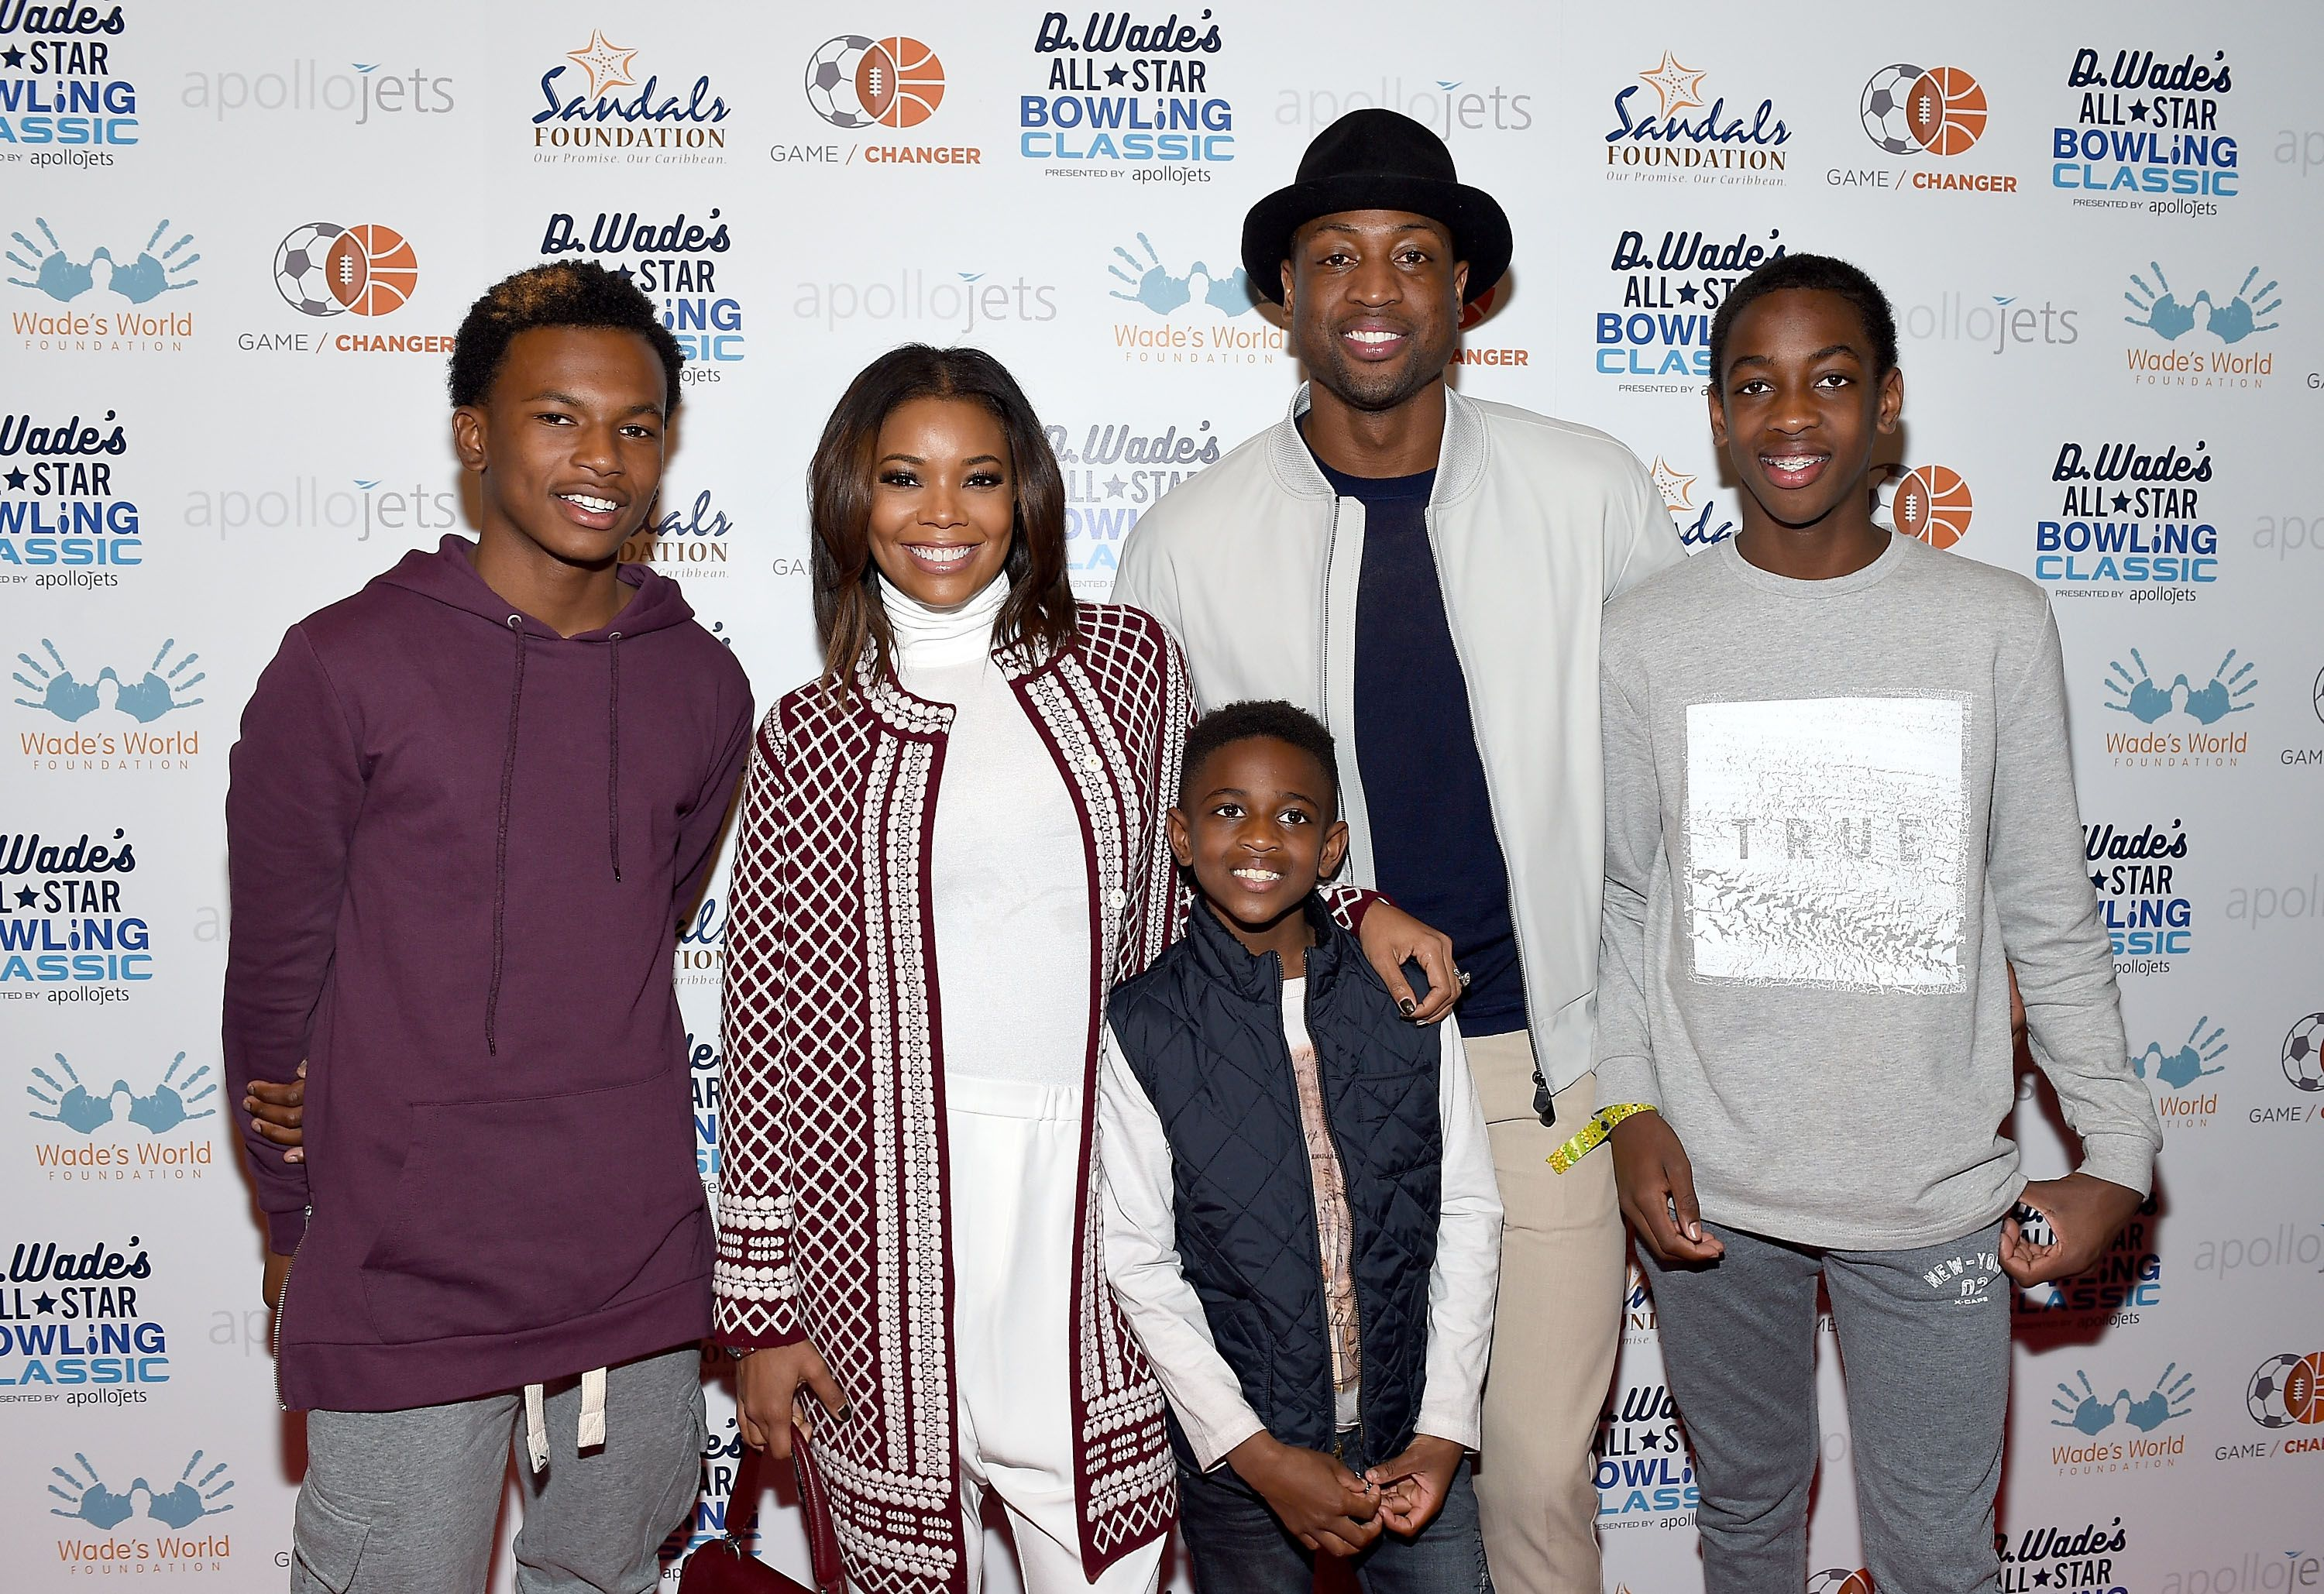 Dahveon Morris, Gabrielle Union, Zion Wade, Dwyane Wade, and Zaire Wade at the DWade All-Star Bowling Classic on February 13, 2016, in Toronto, Canada   Photo: George Pimentel/Getty Images